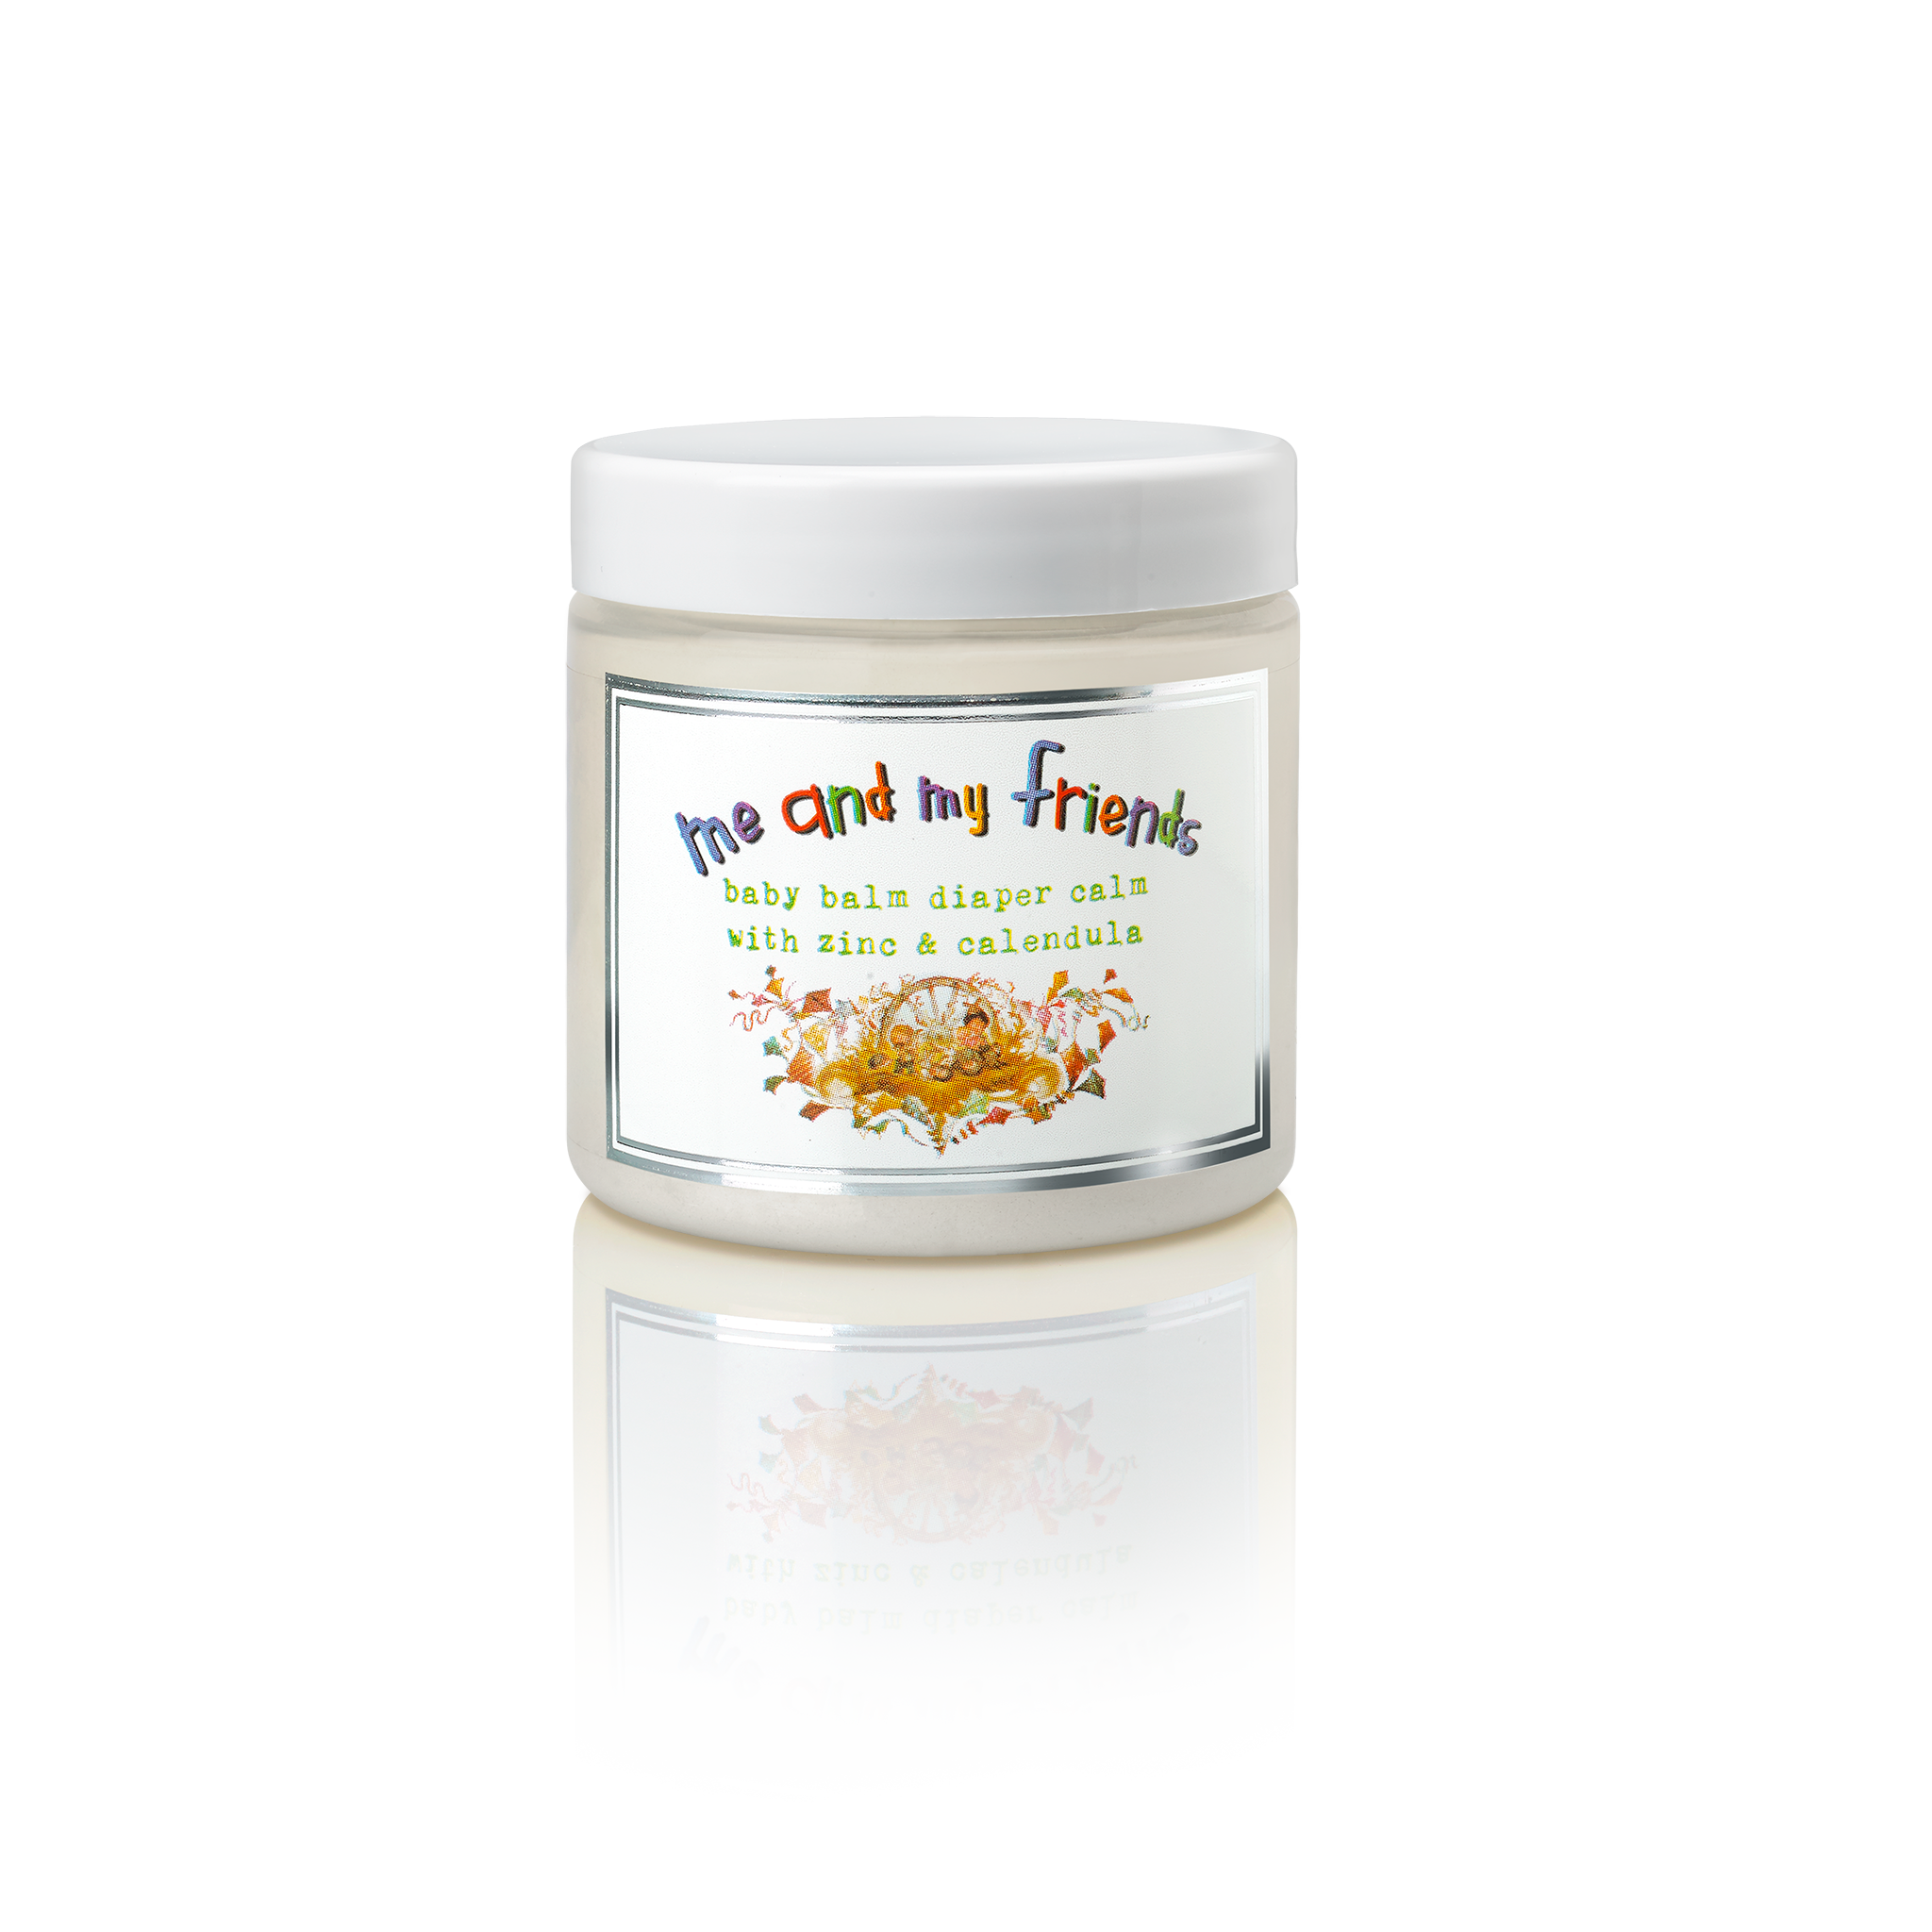 All natural,hypoallergenic diaper rash ointment . No alcohol. Soothing